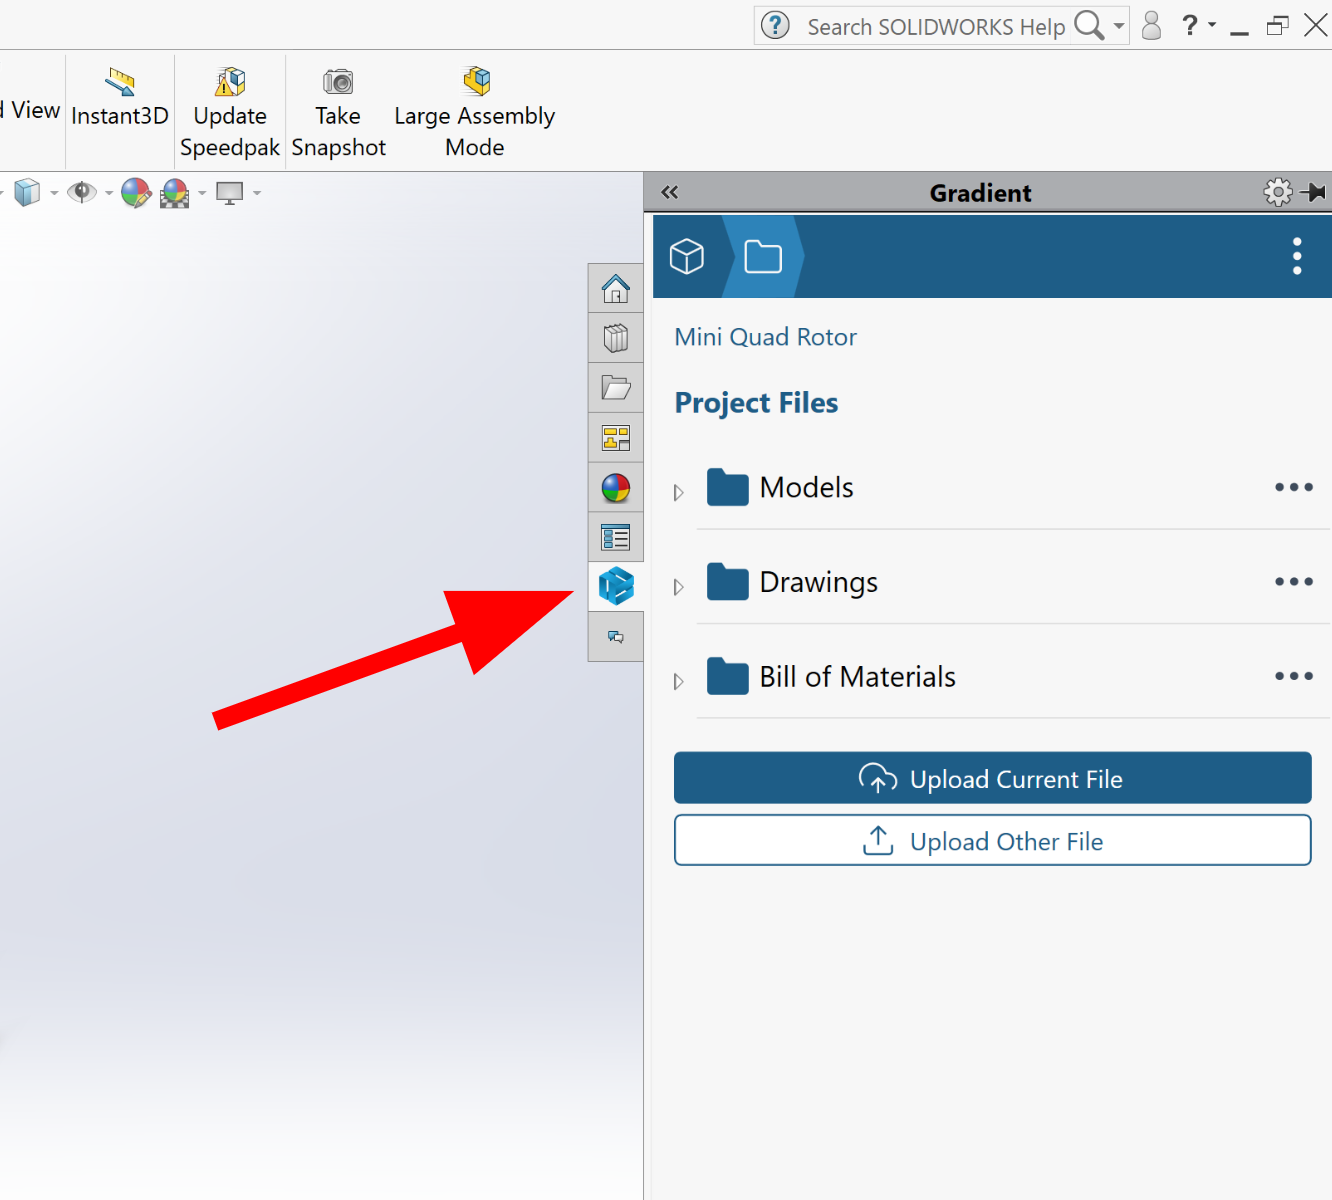 The Gradient icon in SolidWorks that allows users to share CAD files directly from the SolidWorks app